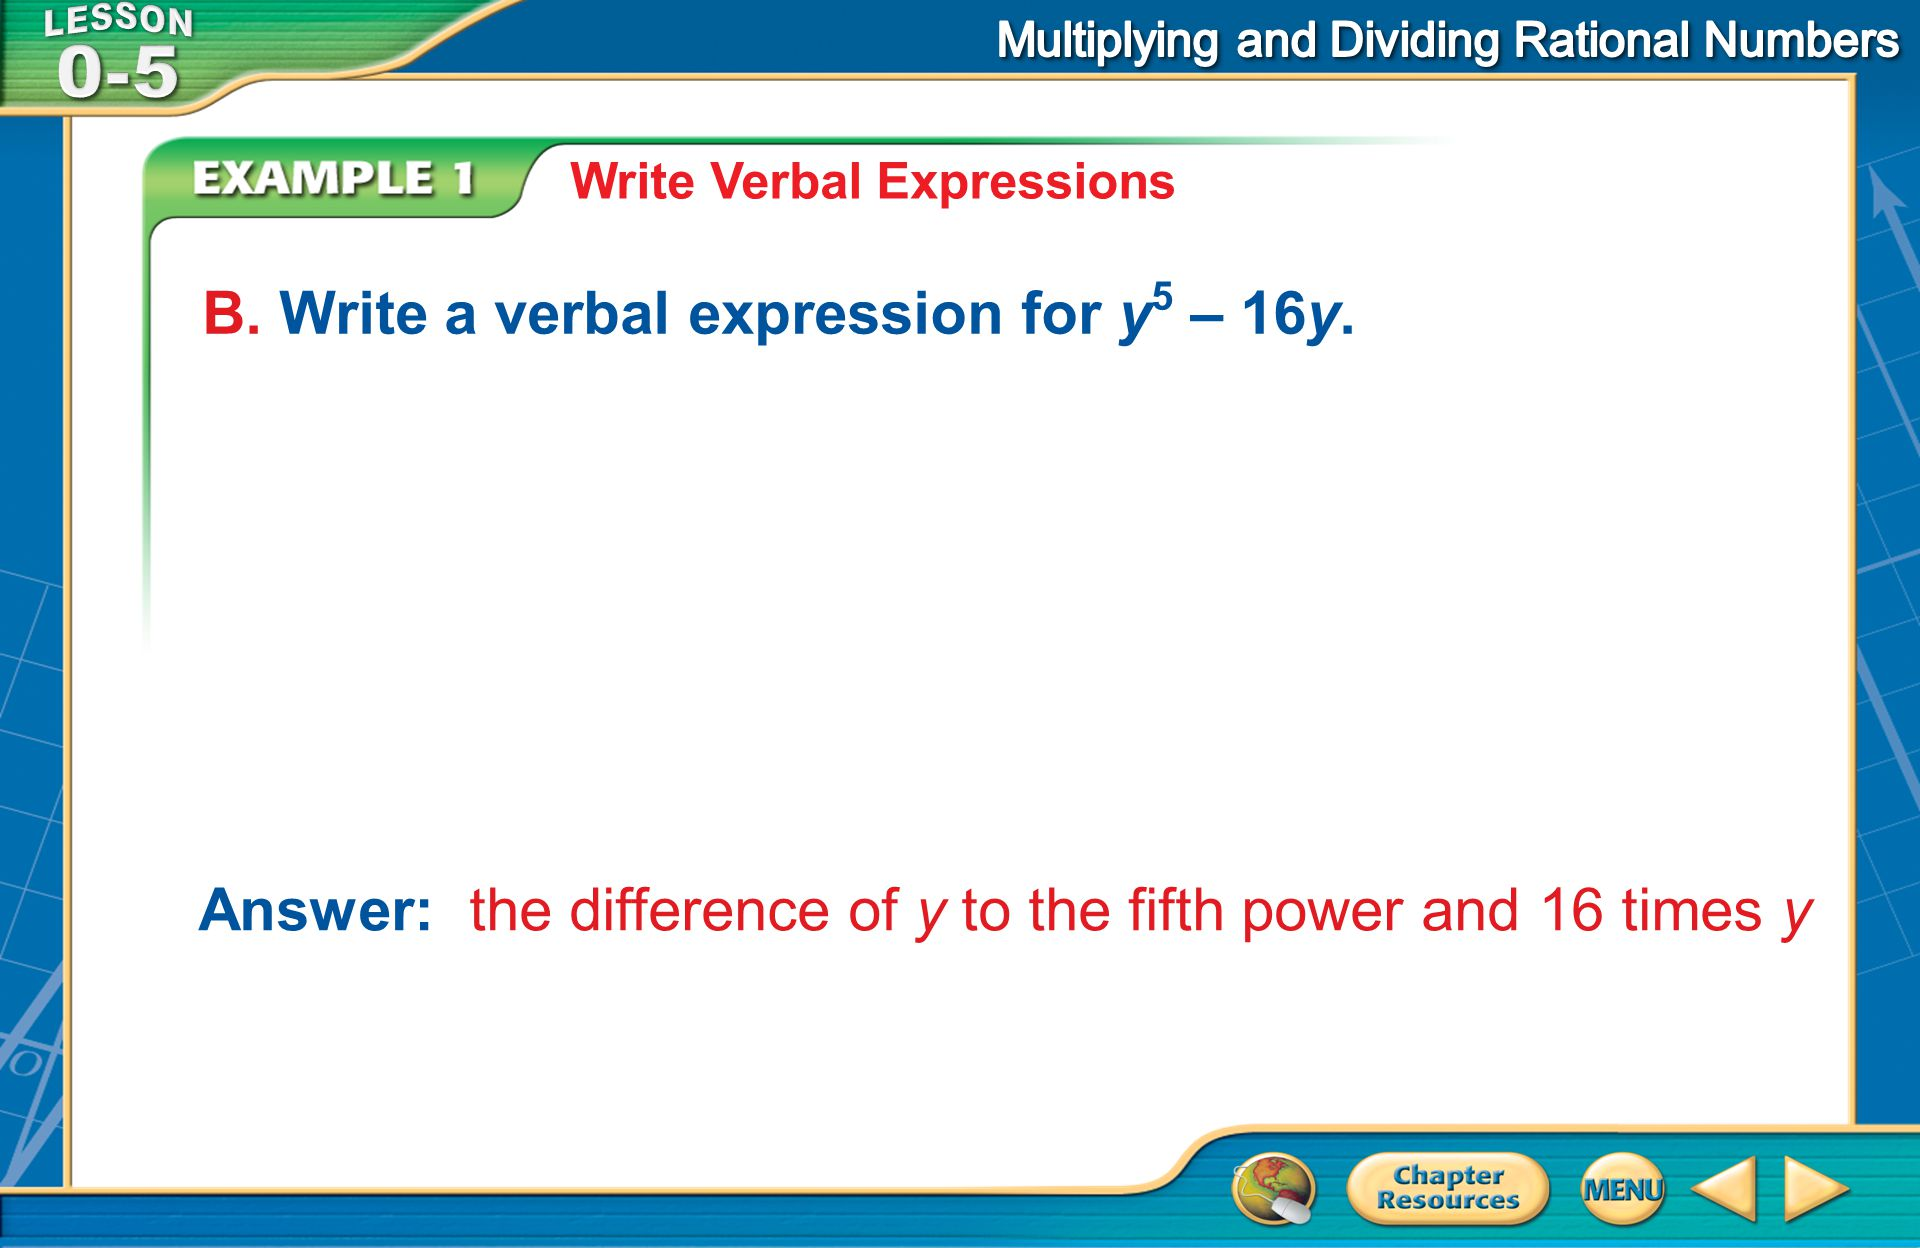 B. Write a verbal expression for y5 – 16y.